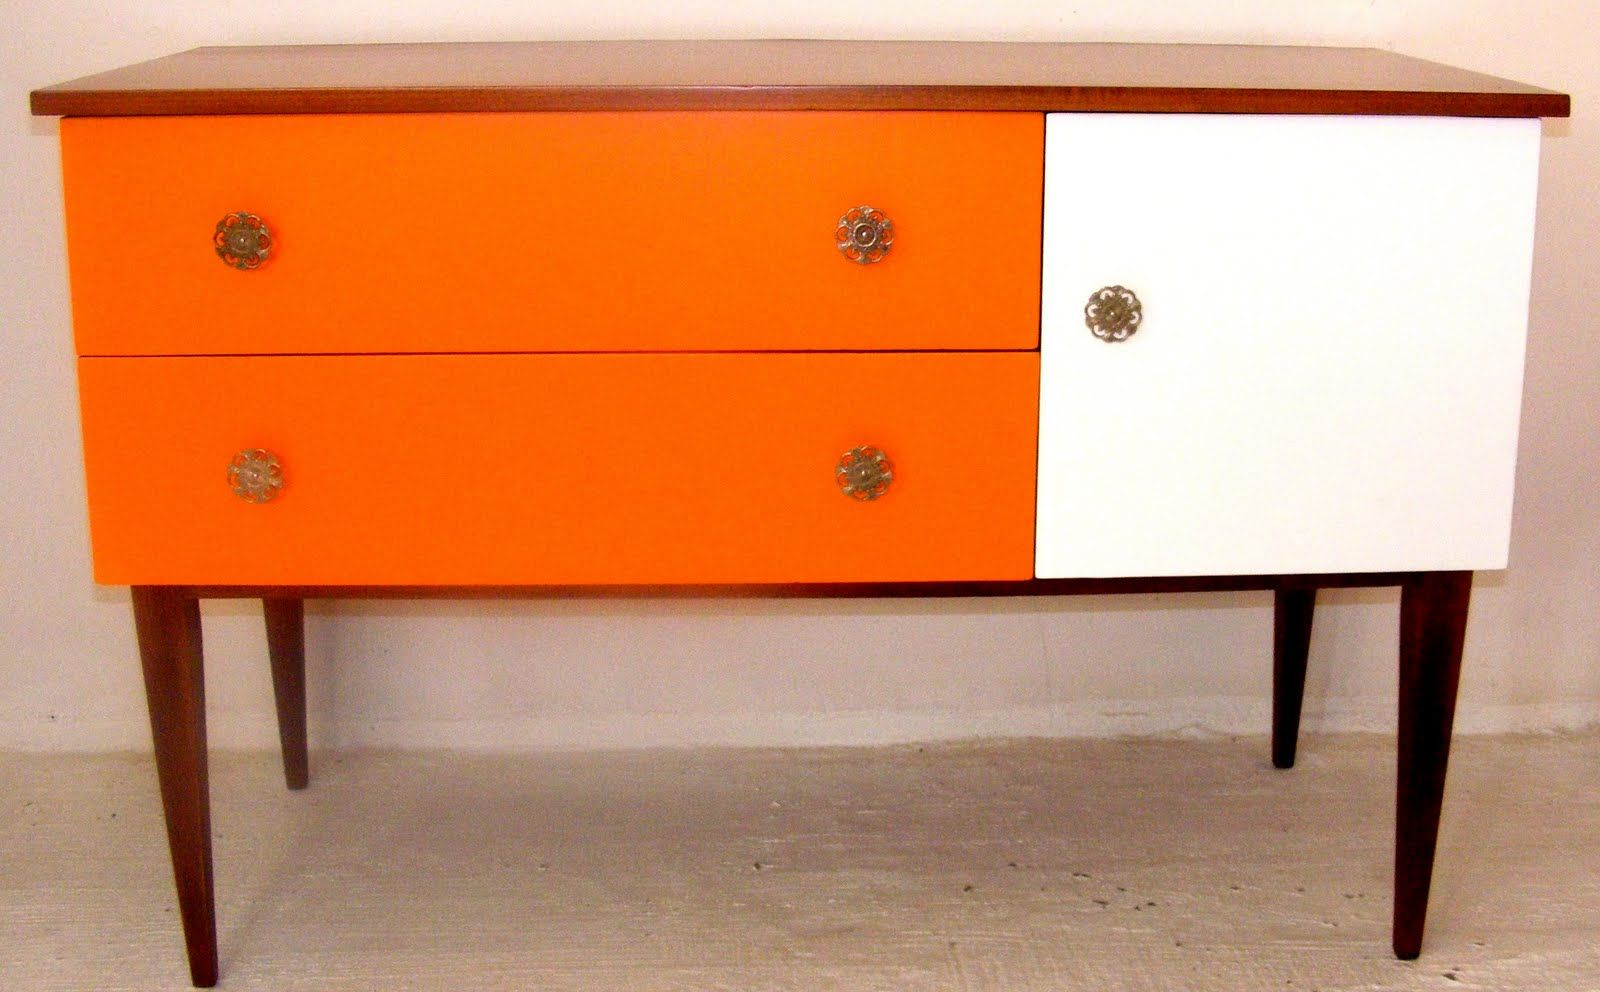 Sideboard With White And Tangerine Accents And Original Flower